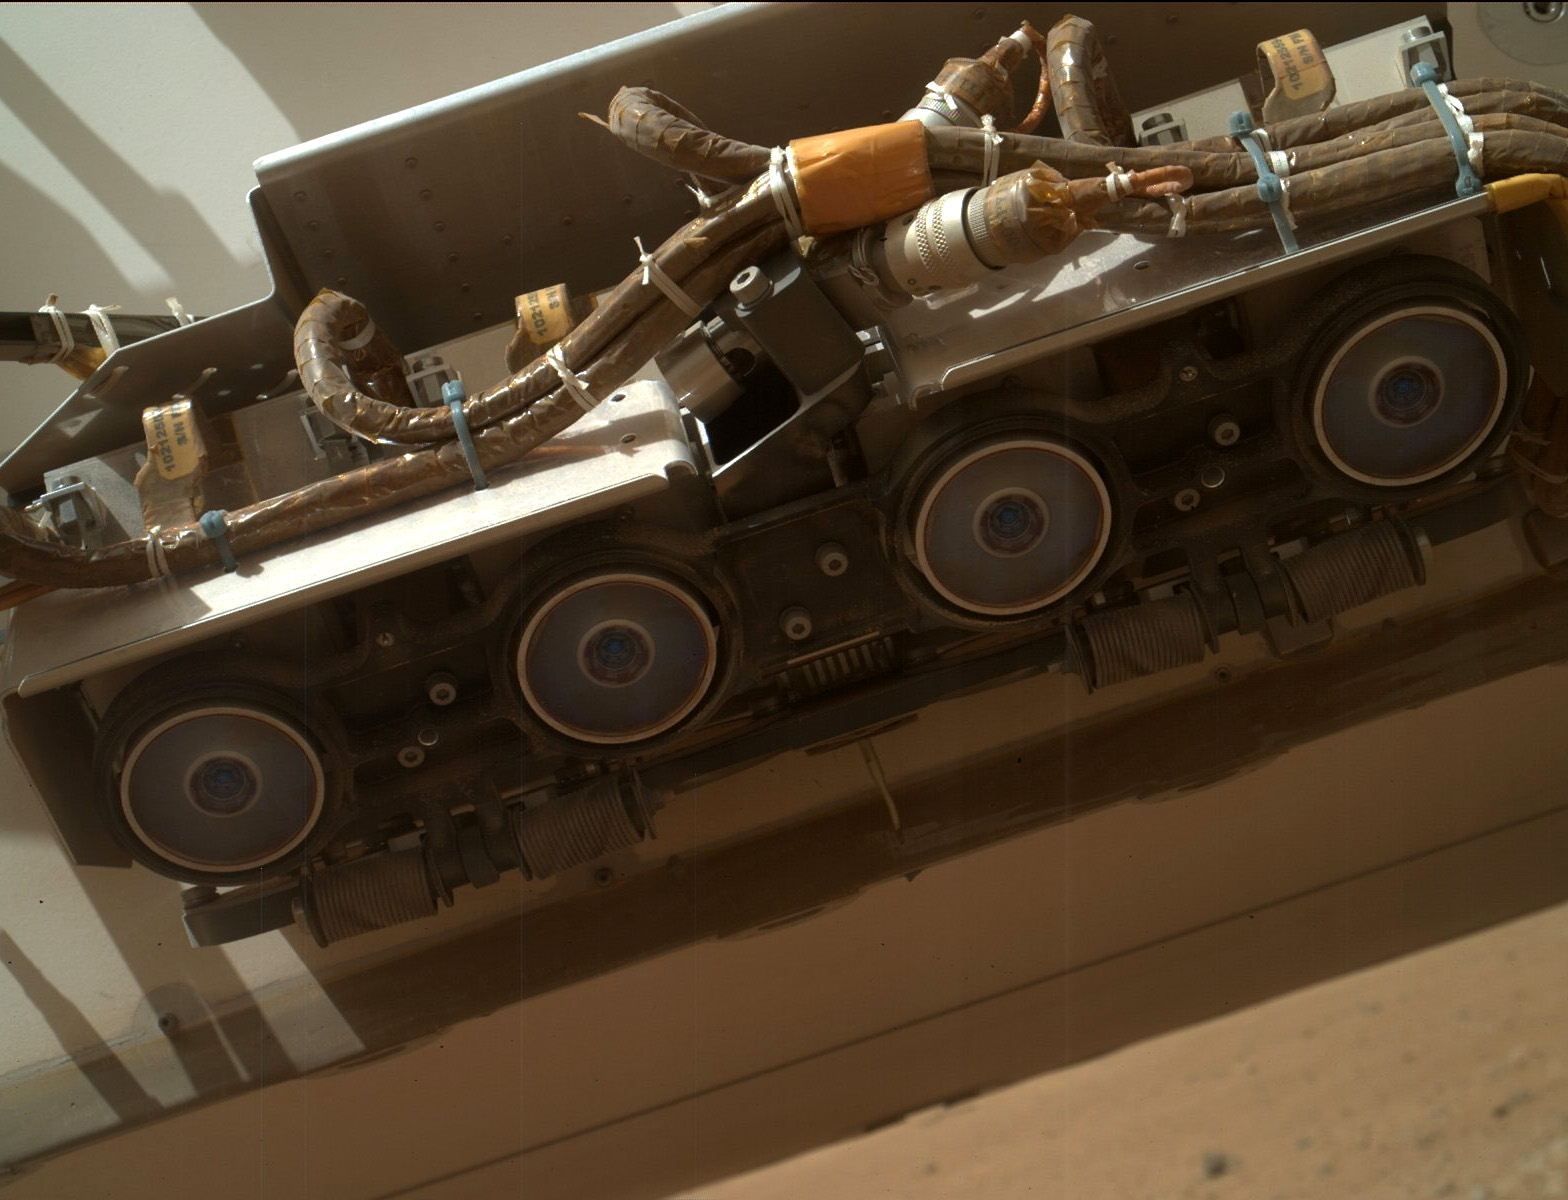 Curiosity's front Hazcams as imaged by the robotic arm-mounted MARDI camera. Credit: NASA/JPL-Caltech